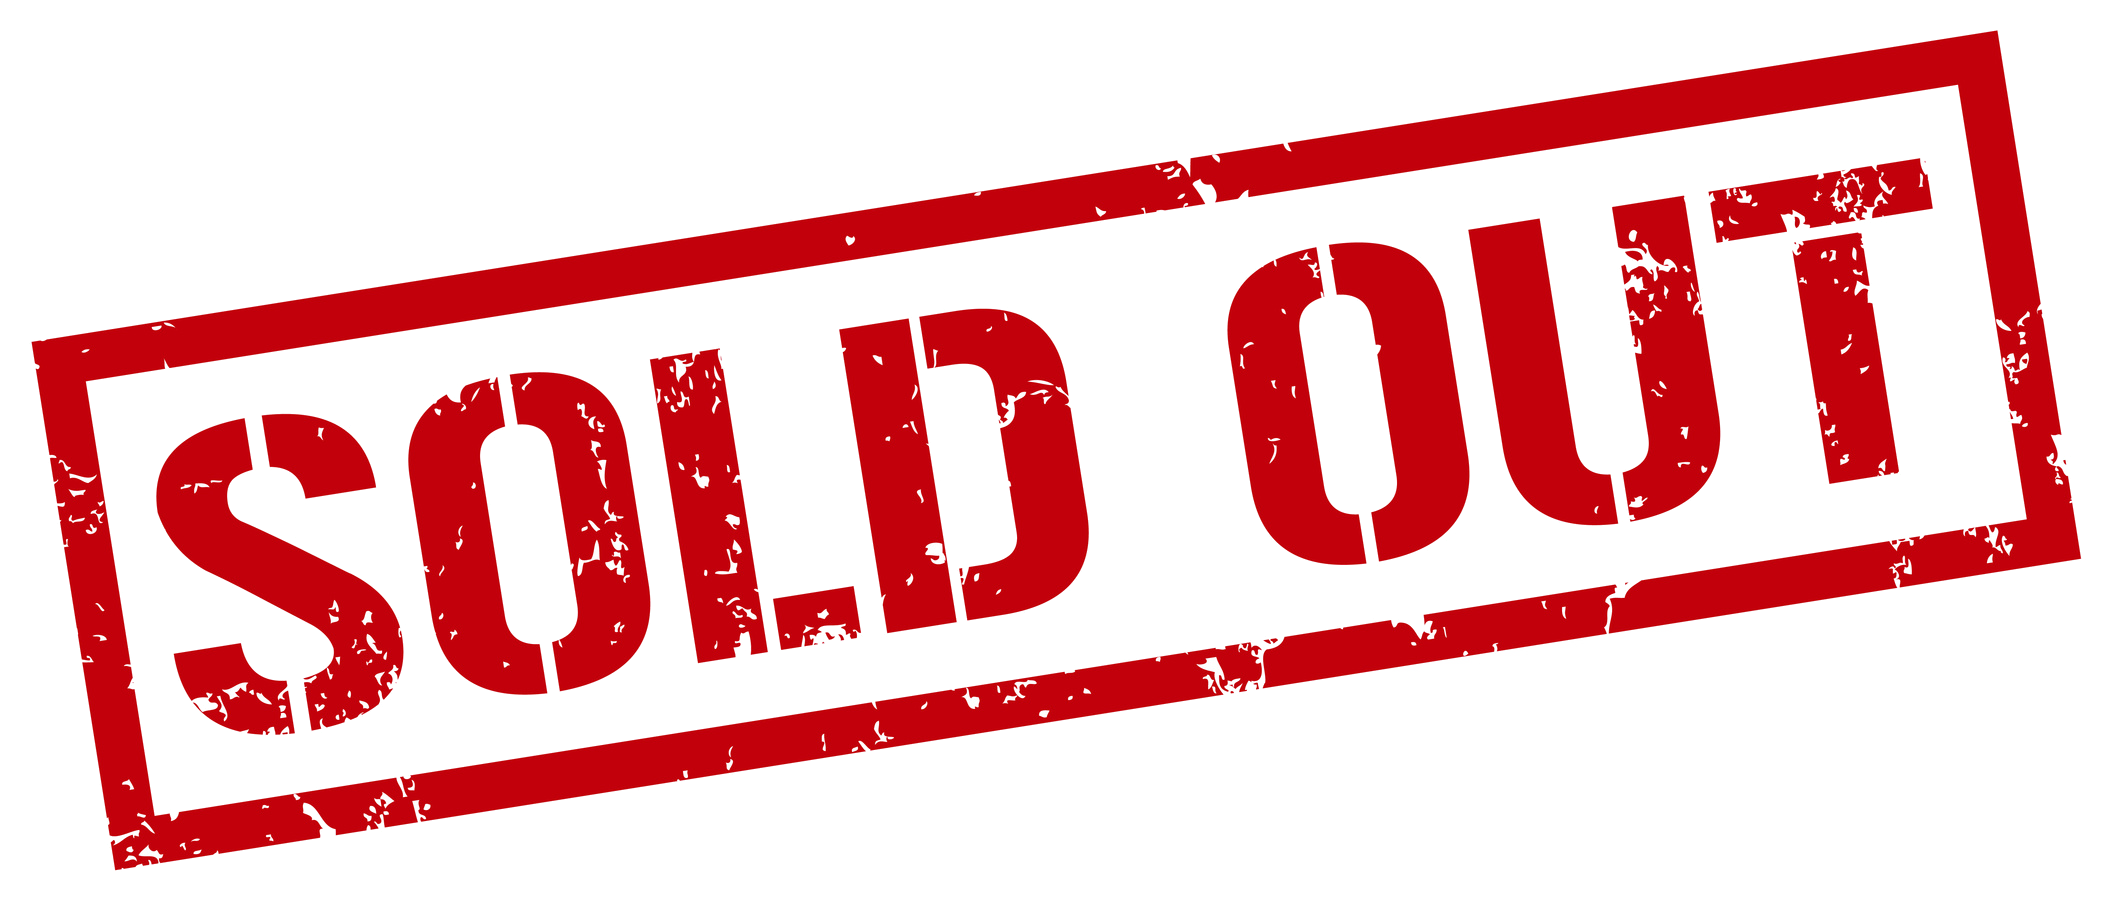 2112x900 Sold Out Png Transparent Sold Out.png Images. Pluspng